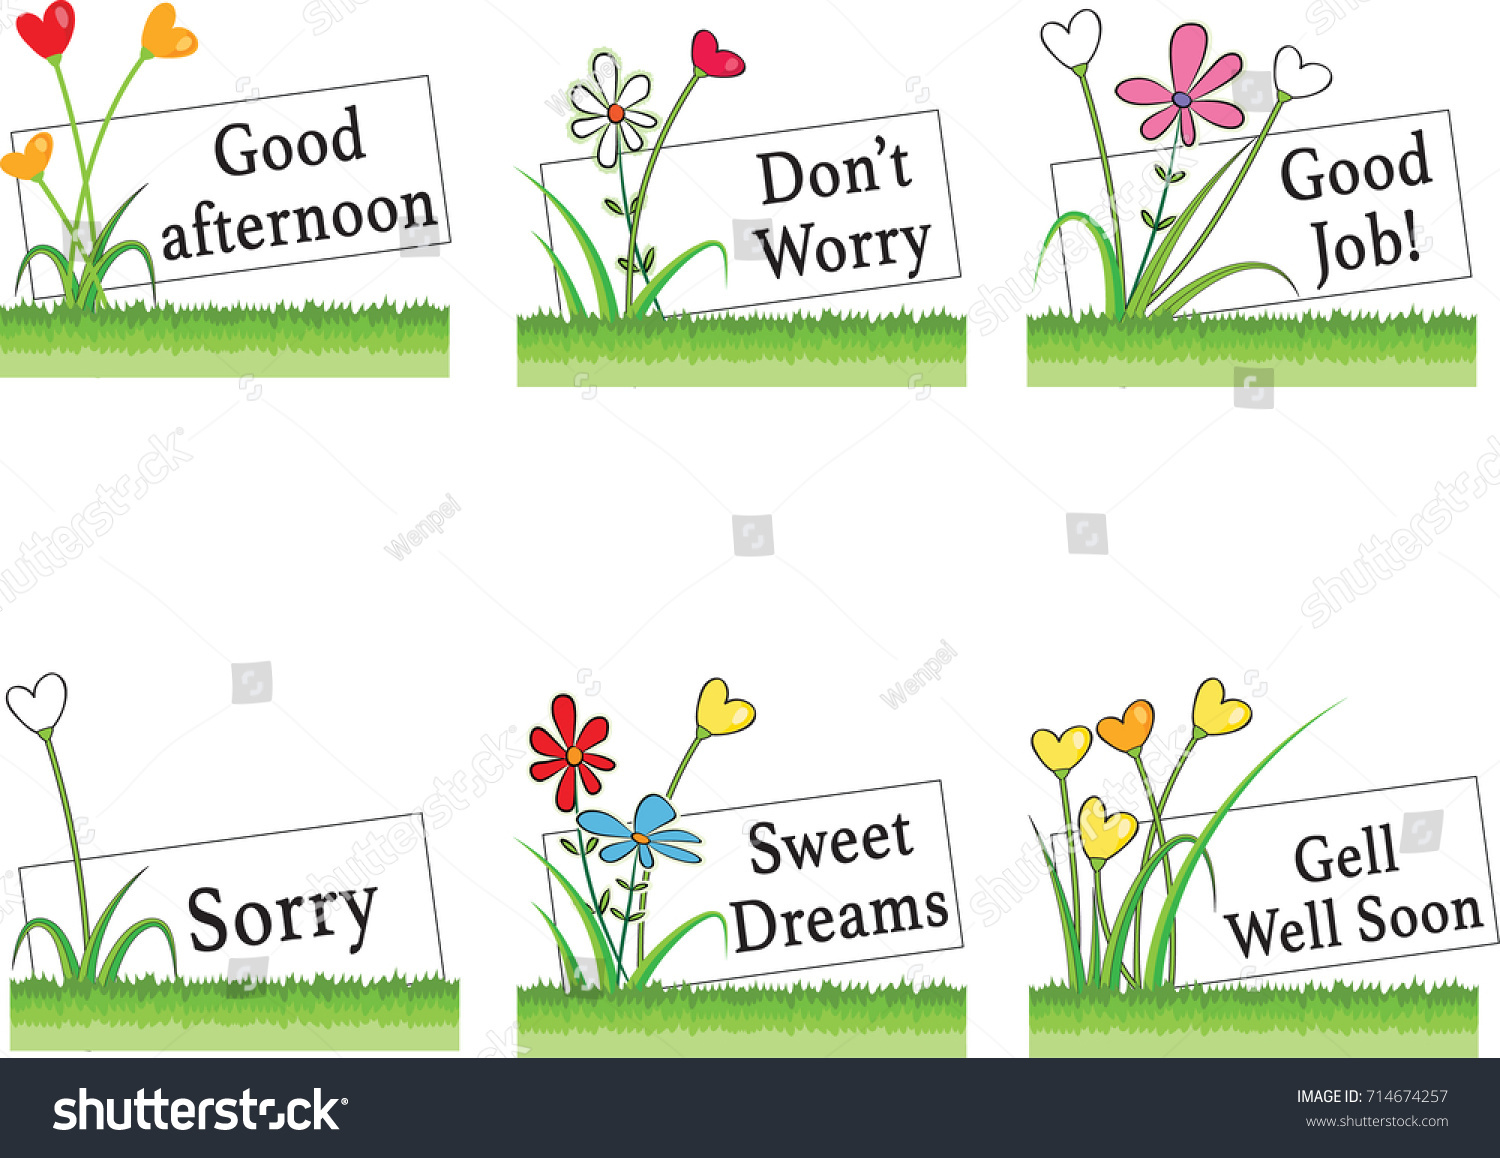 Flowers greeting card border stock vector 714674257 shutterstock flowers and greeting card border kristyandbryce Choice Image